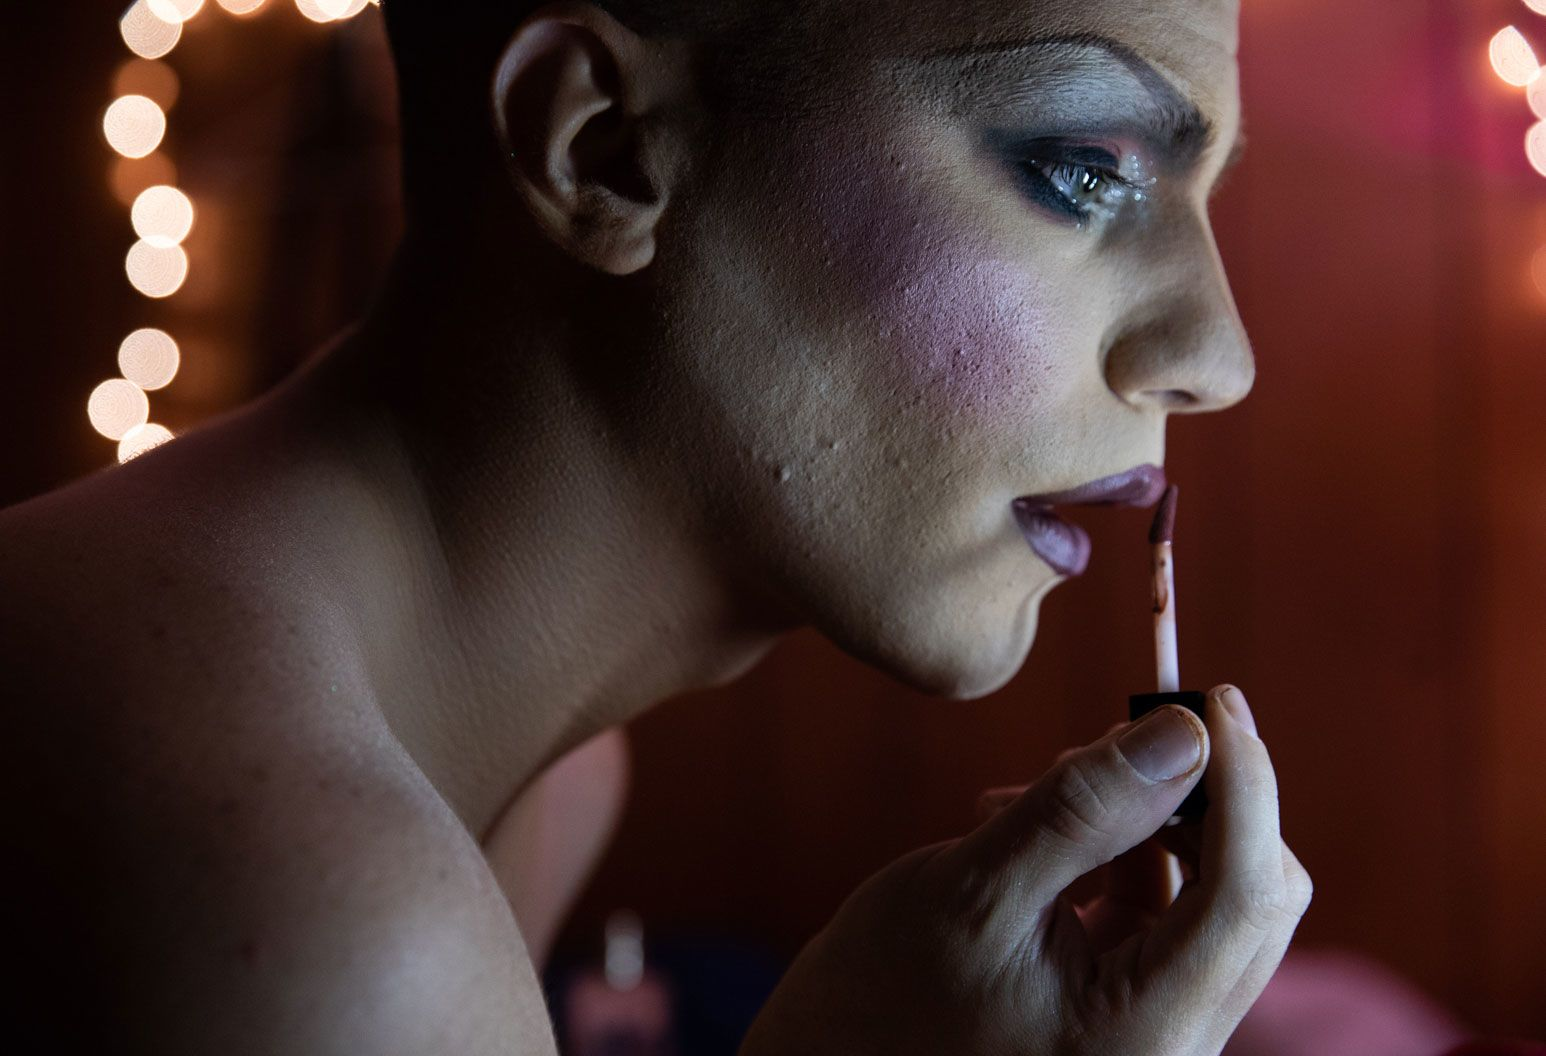 A man with drag make up on his face stares into the mirror as he applies lipstick.